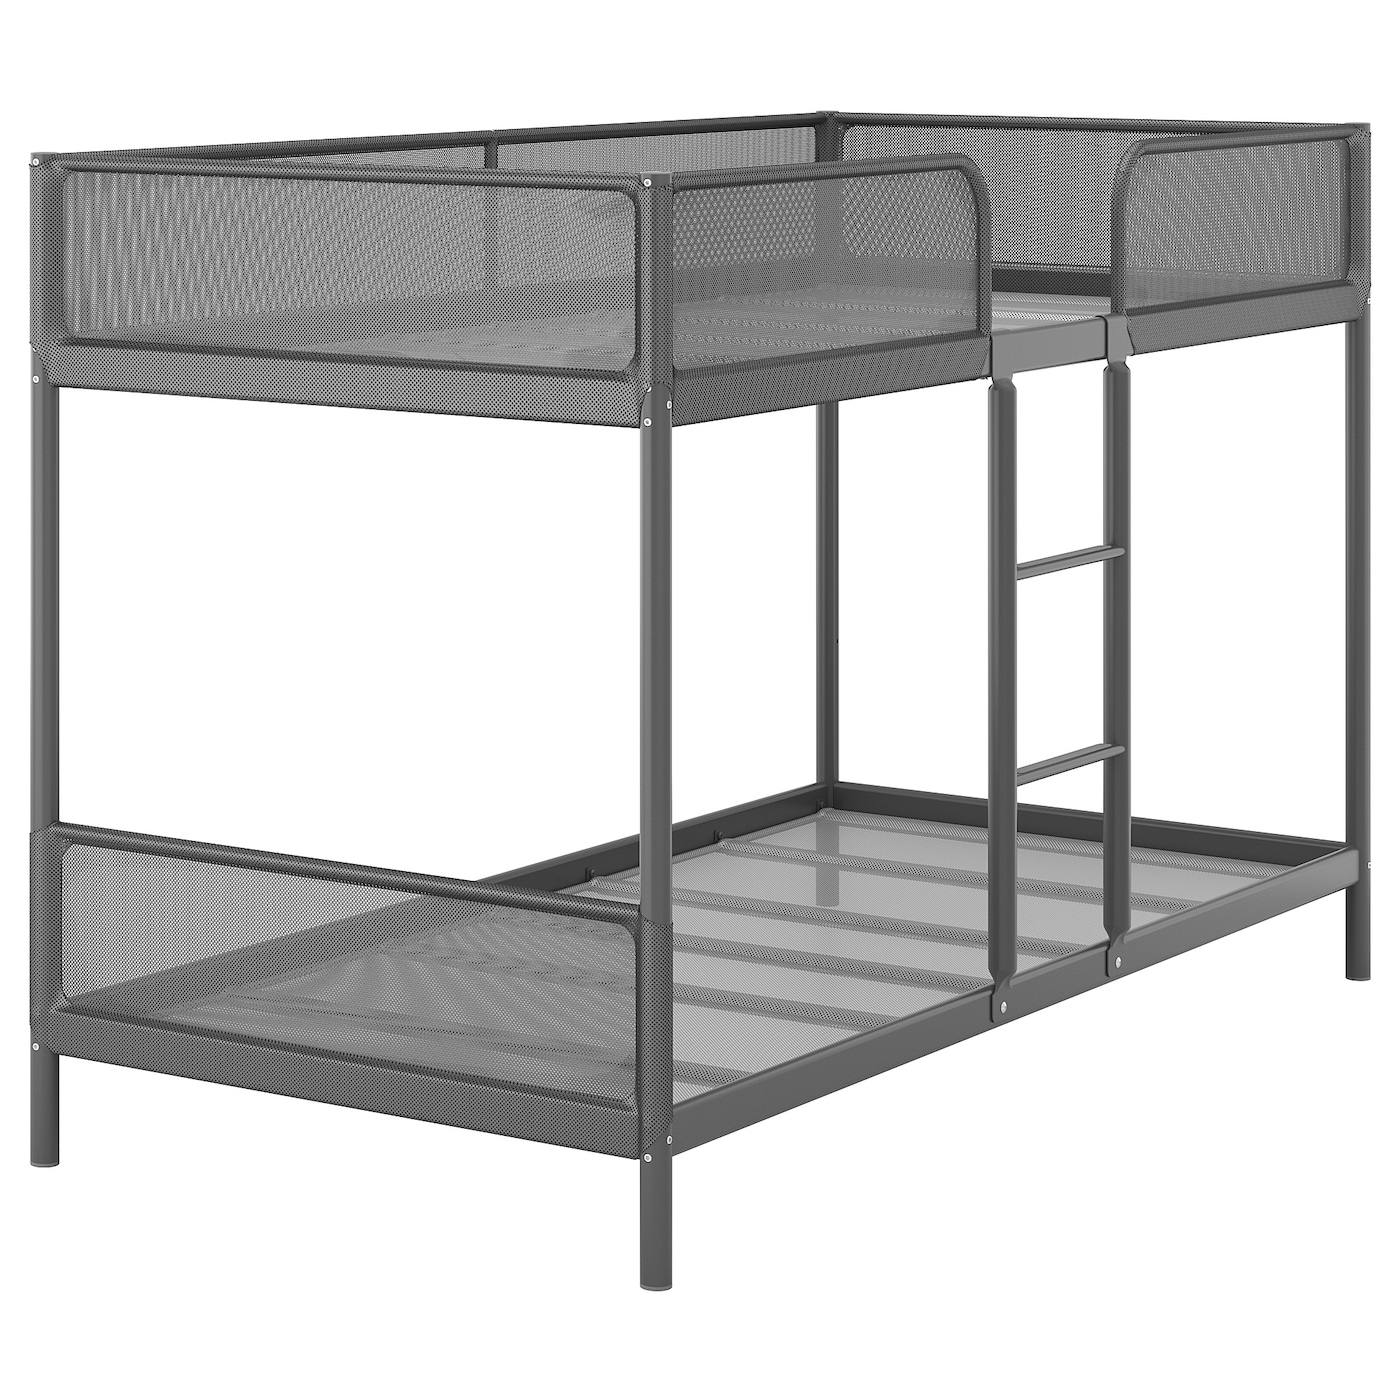 Picture of: Tuffing Bunk Bed Frame Dark Grey 90×200 Cm Ikea